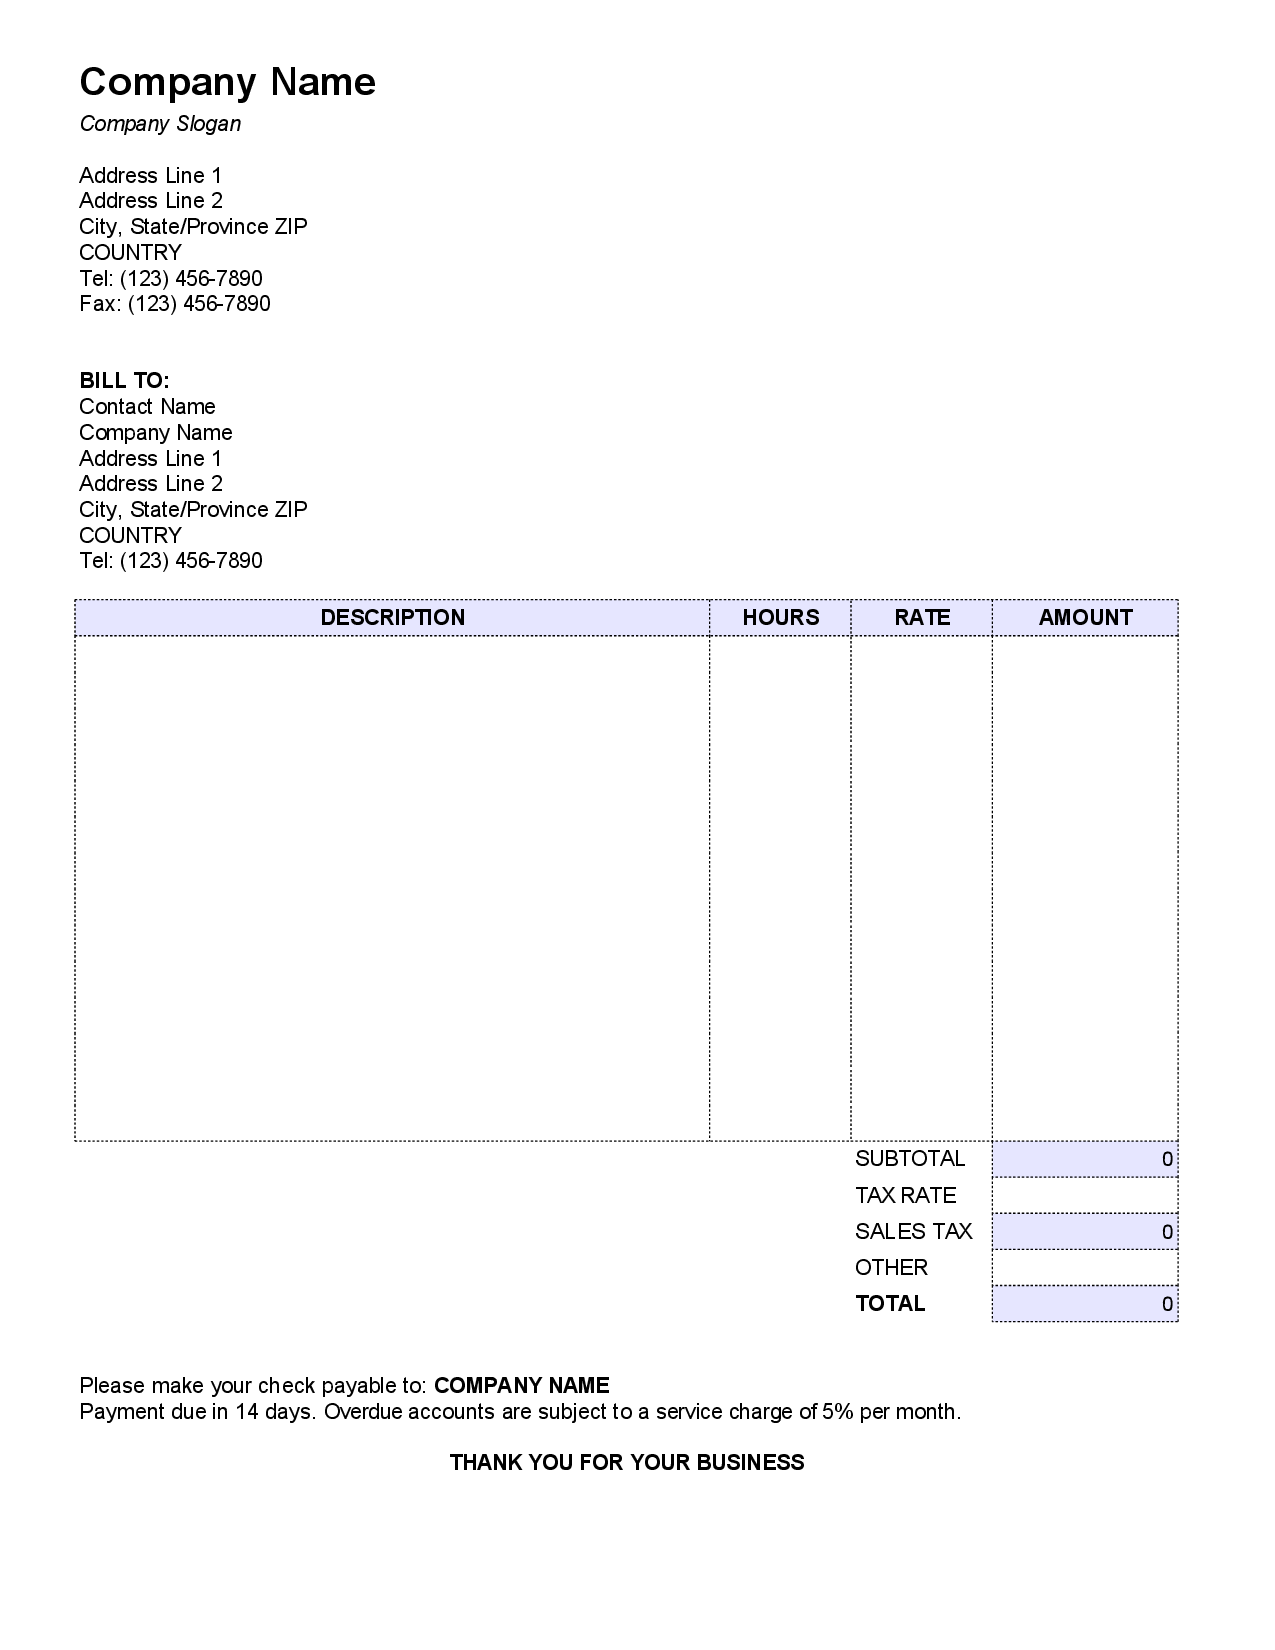 Sample Invoices for Small Business and Invoices for Small Business Resume Templates